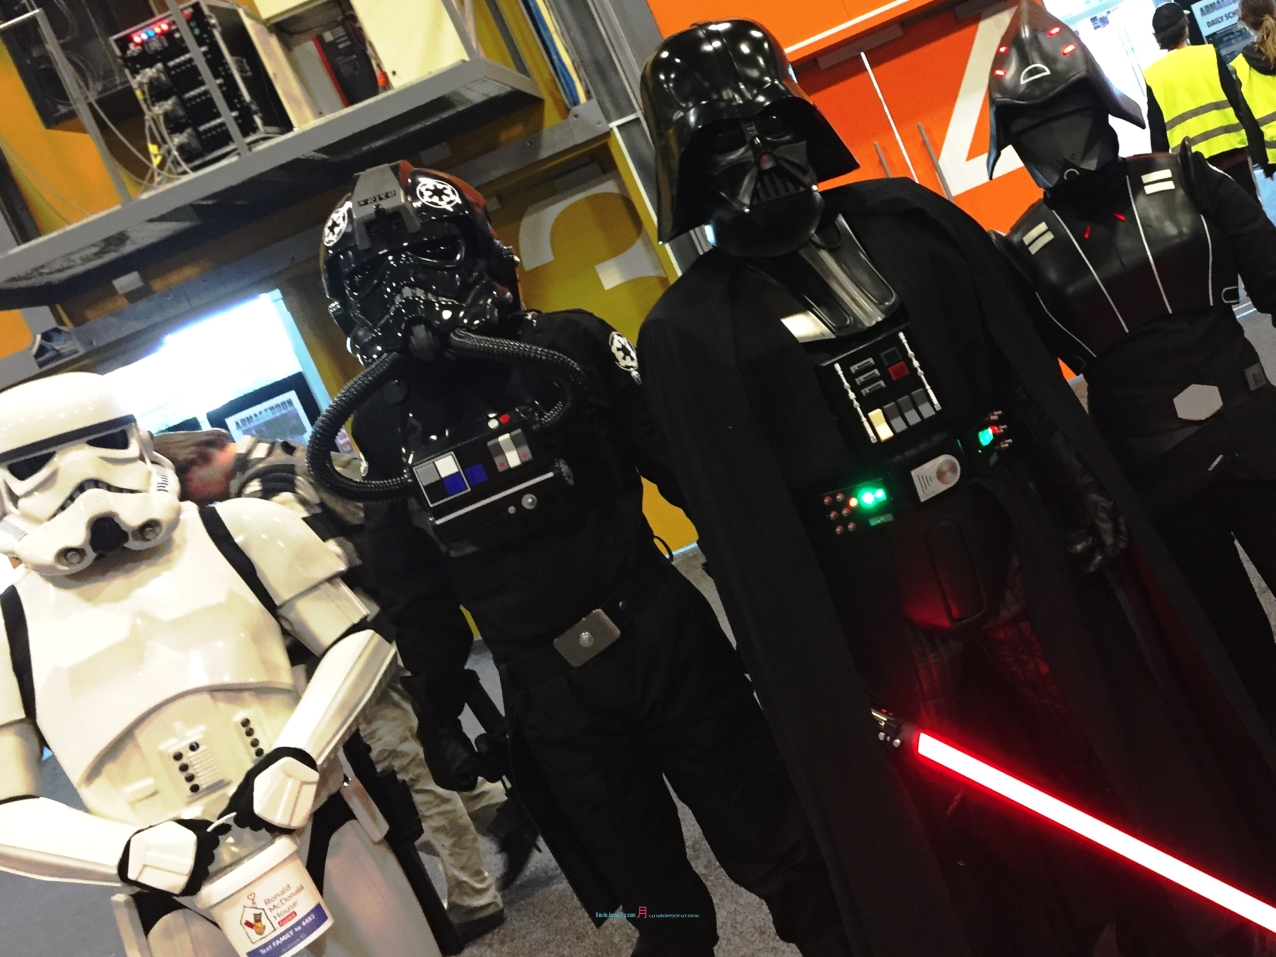 Orthough they're from the dark side but a little good light side in finding funds for the Ronald McDonald House..